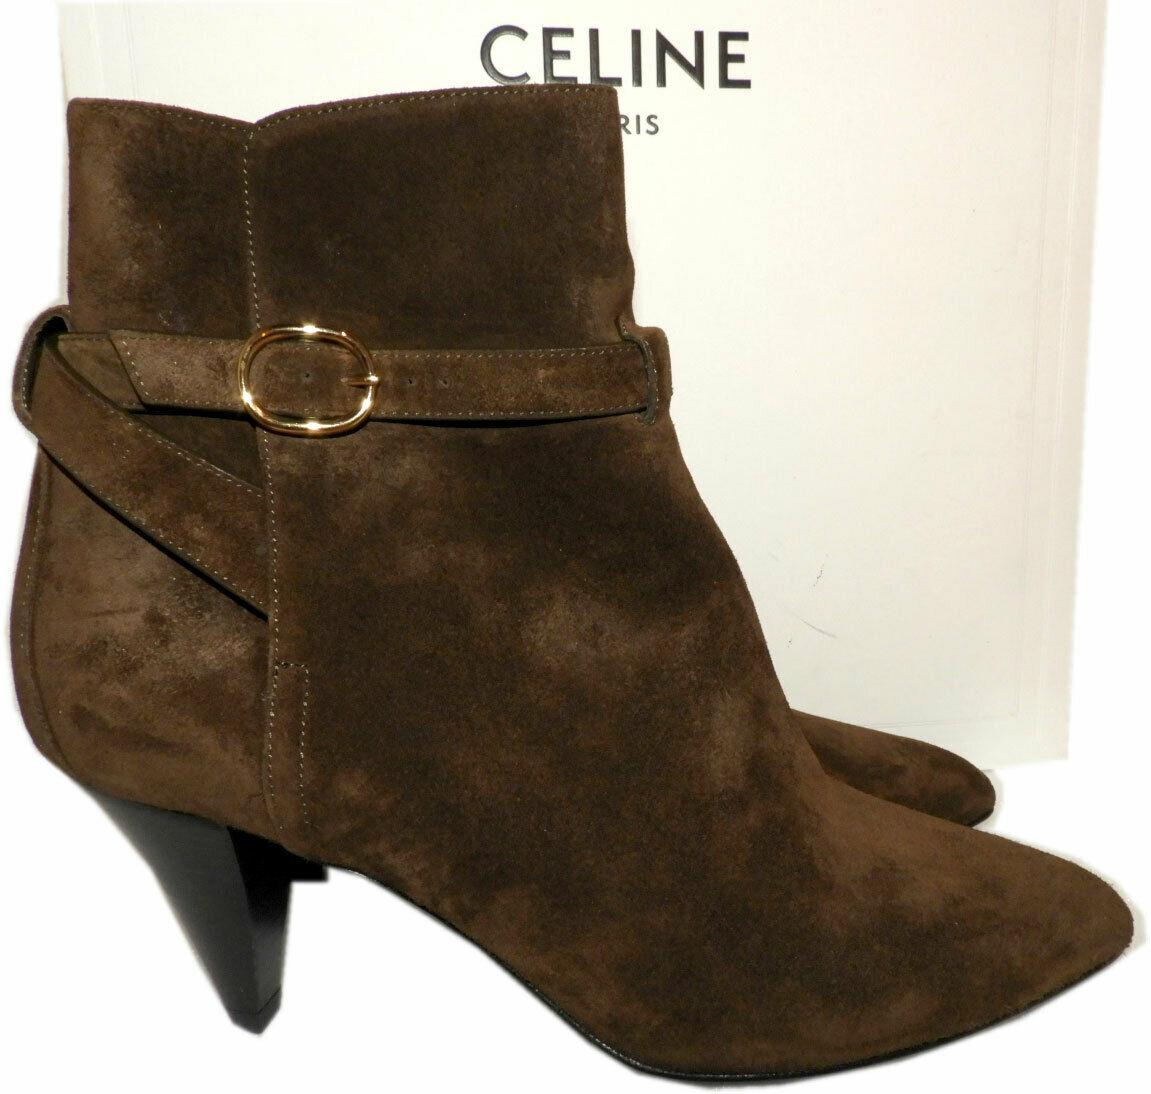 CELINE Triangle Heel Jodhpur Ankle Boots Ankle Booties Shoes 38 Khaki Suede